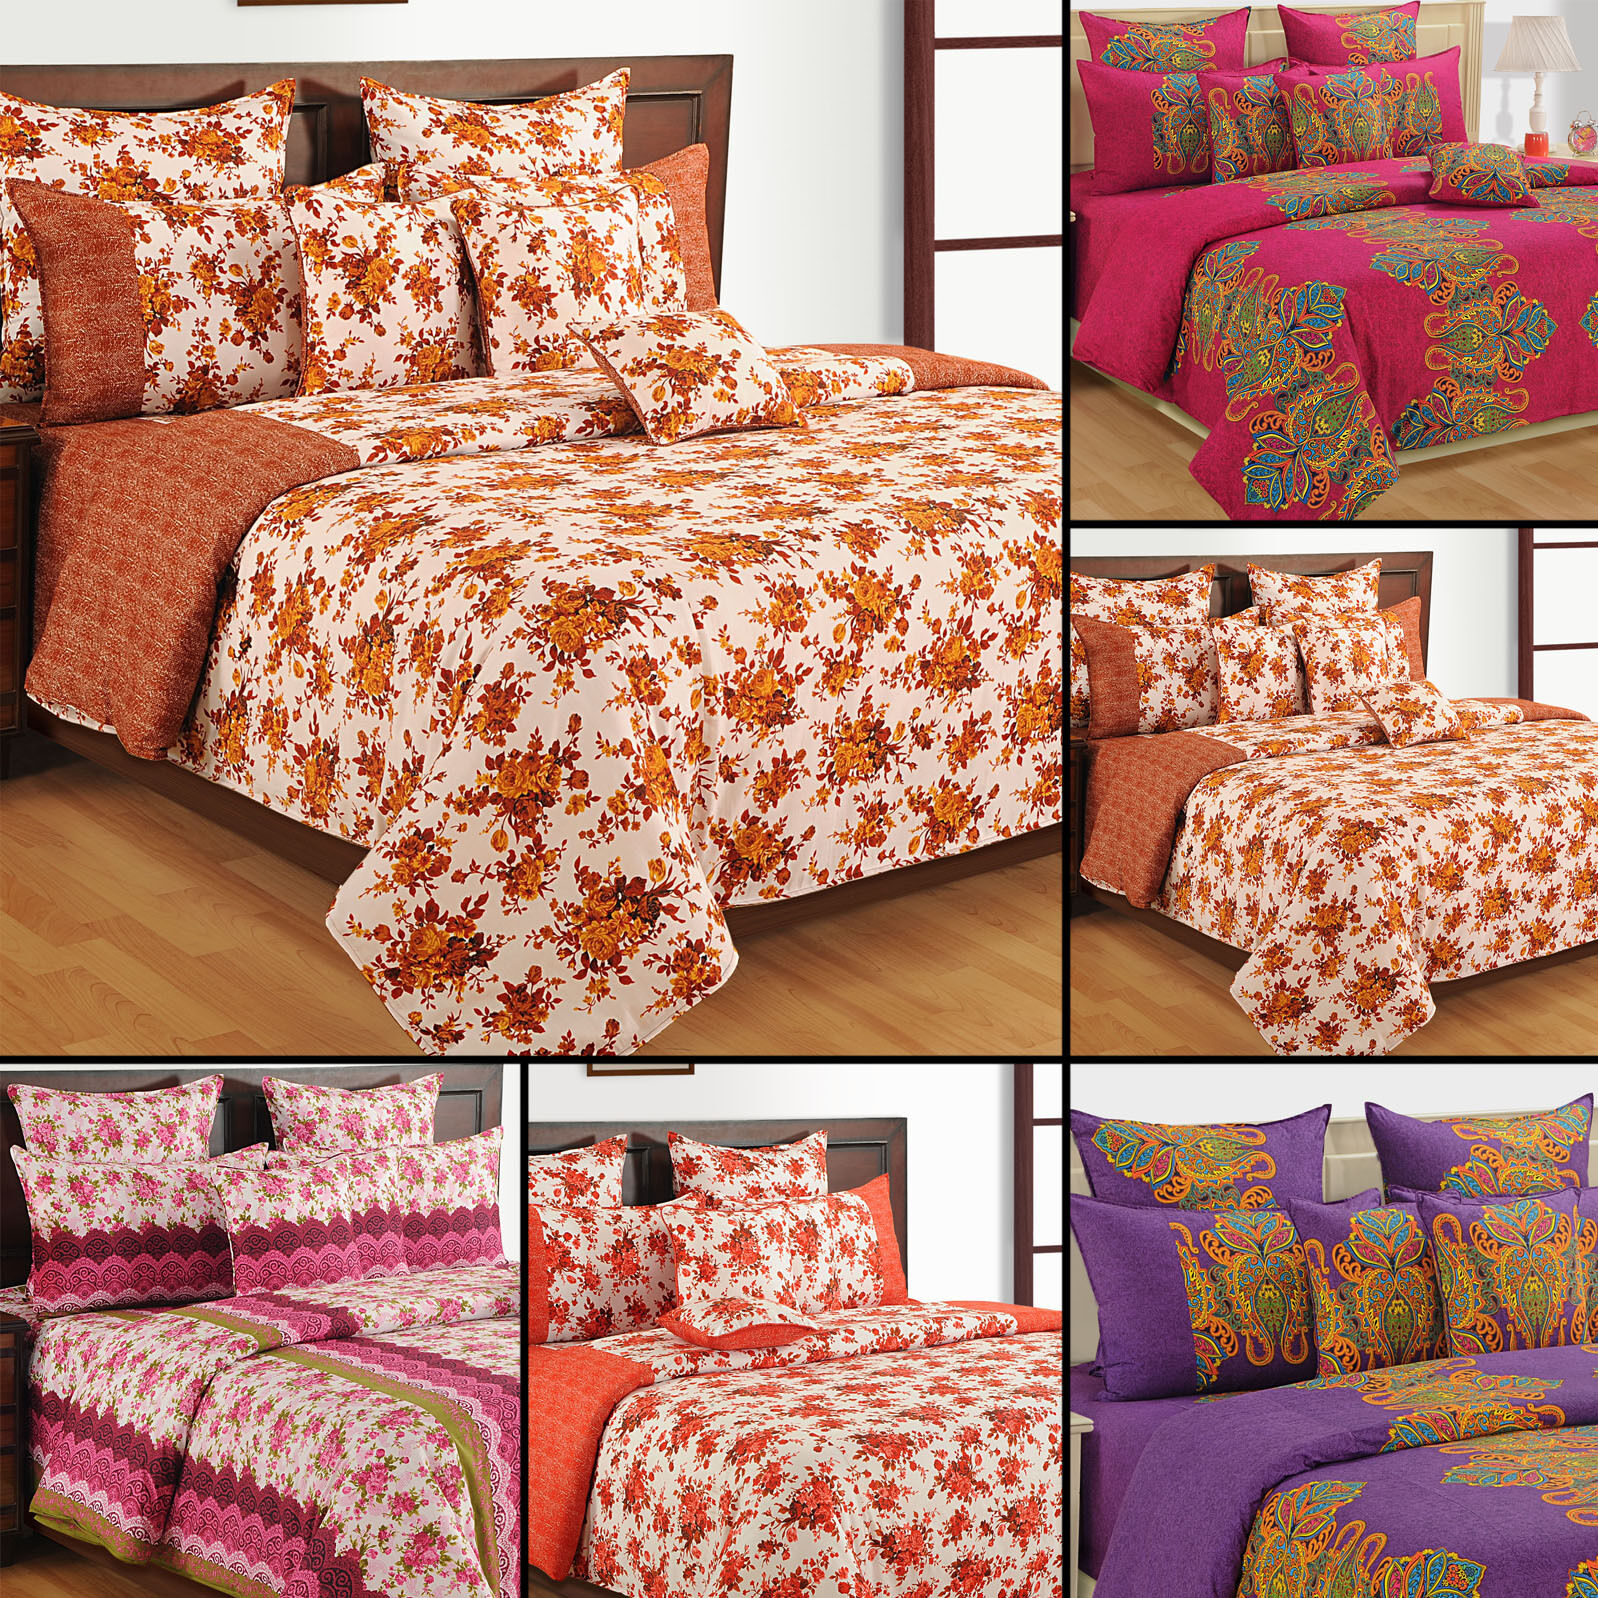 100% Cotton Twin Queen Size Home Decorative Floral Bedding Comforter -4312